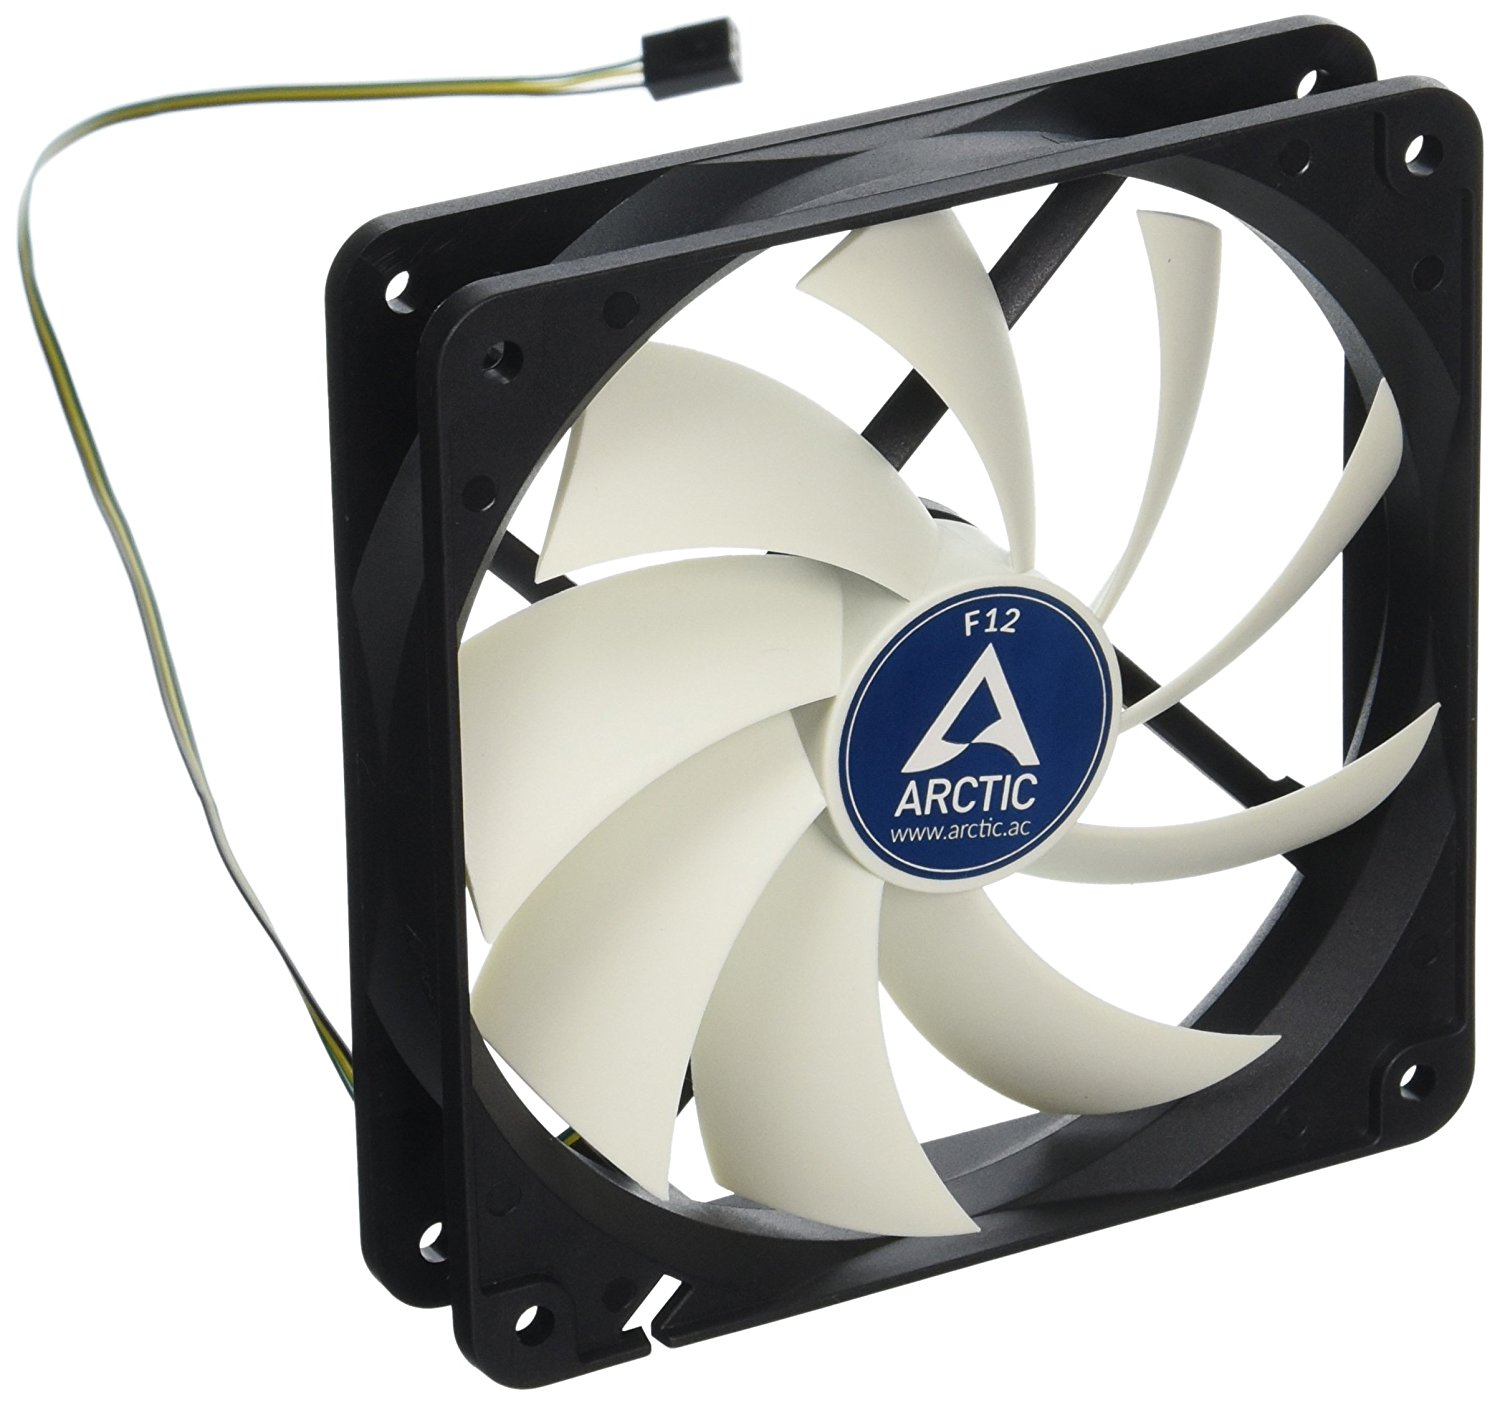 Top 7 Best 120mm Case Fans In 2019 Reviews Amp Buyer Guide